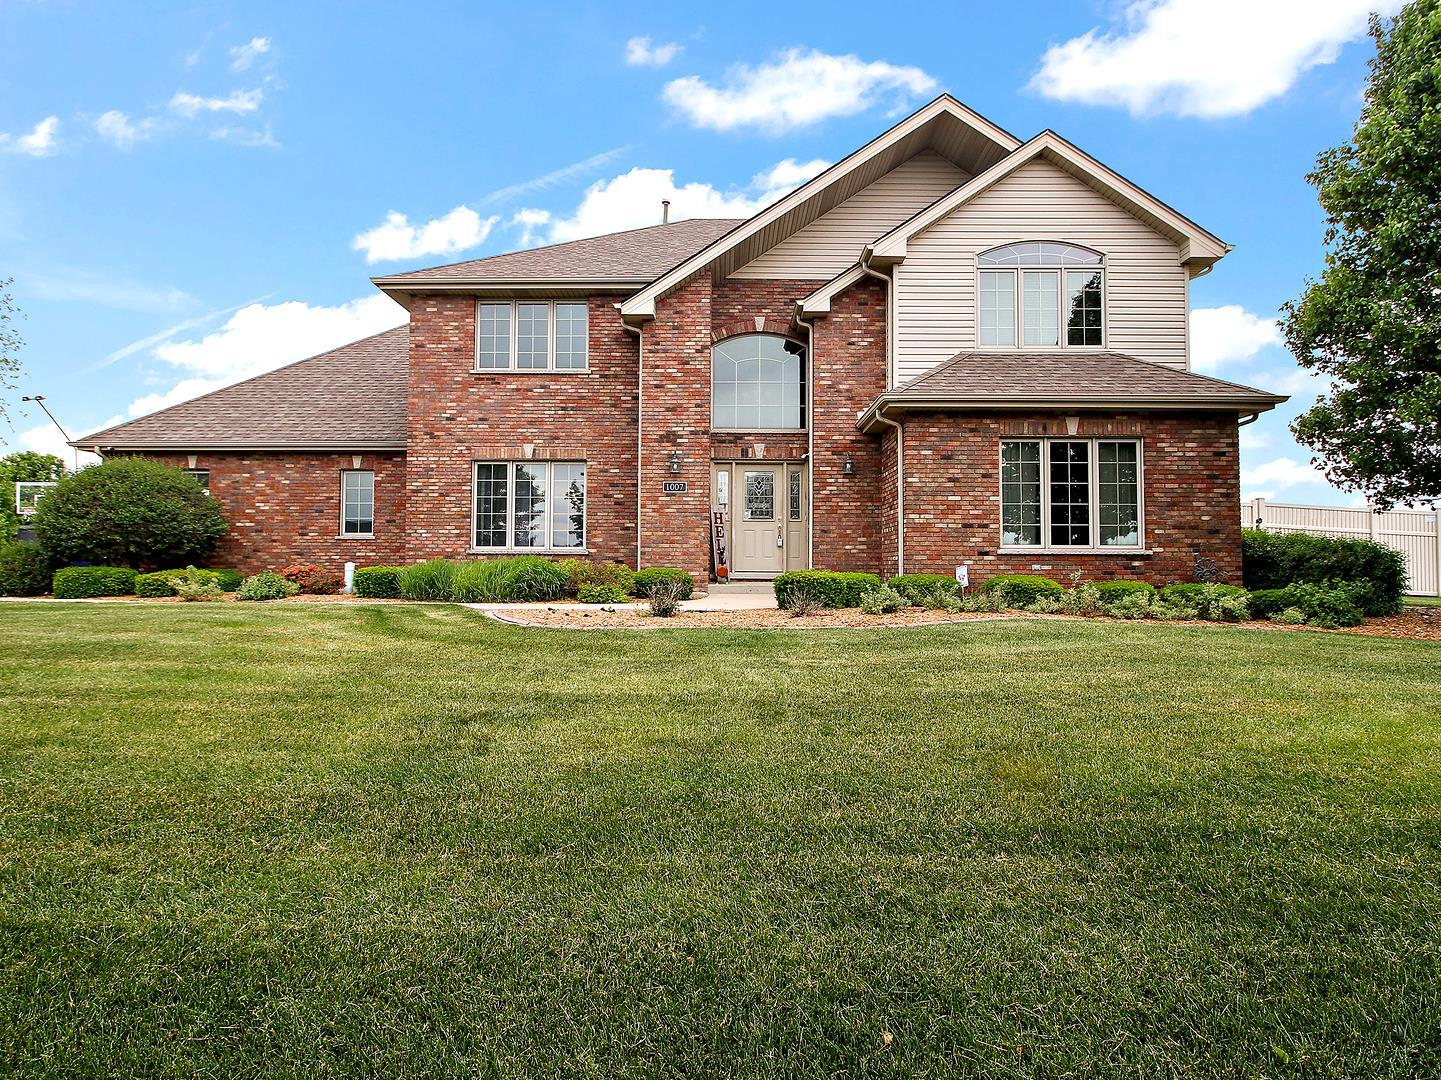 1007 Granite Drive, Manteno, IL 60950 - #: 10737147